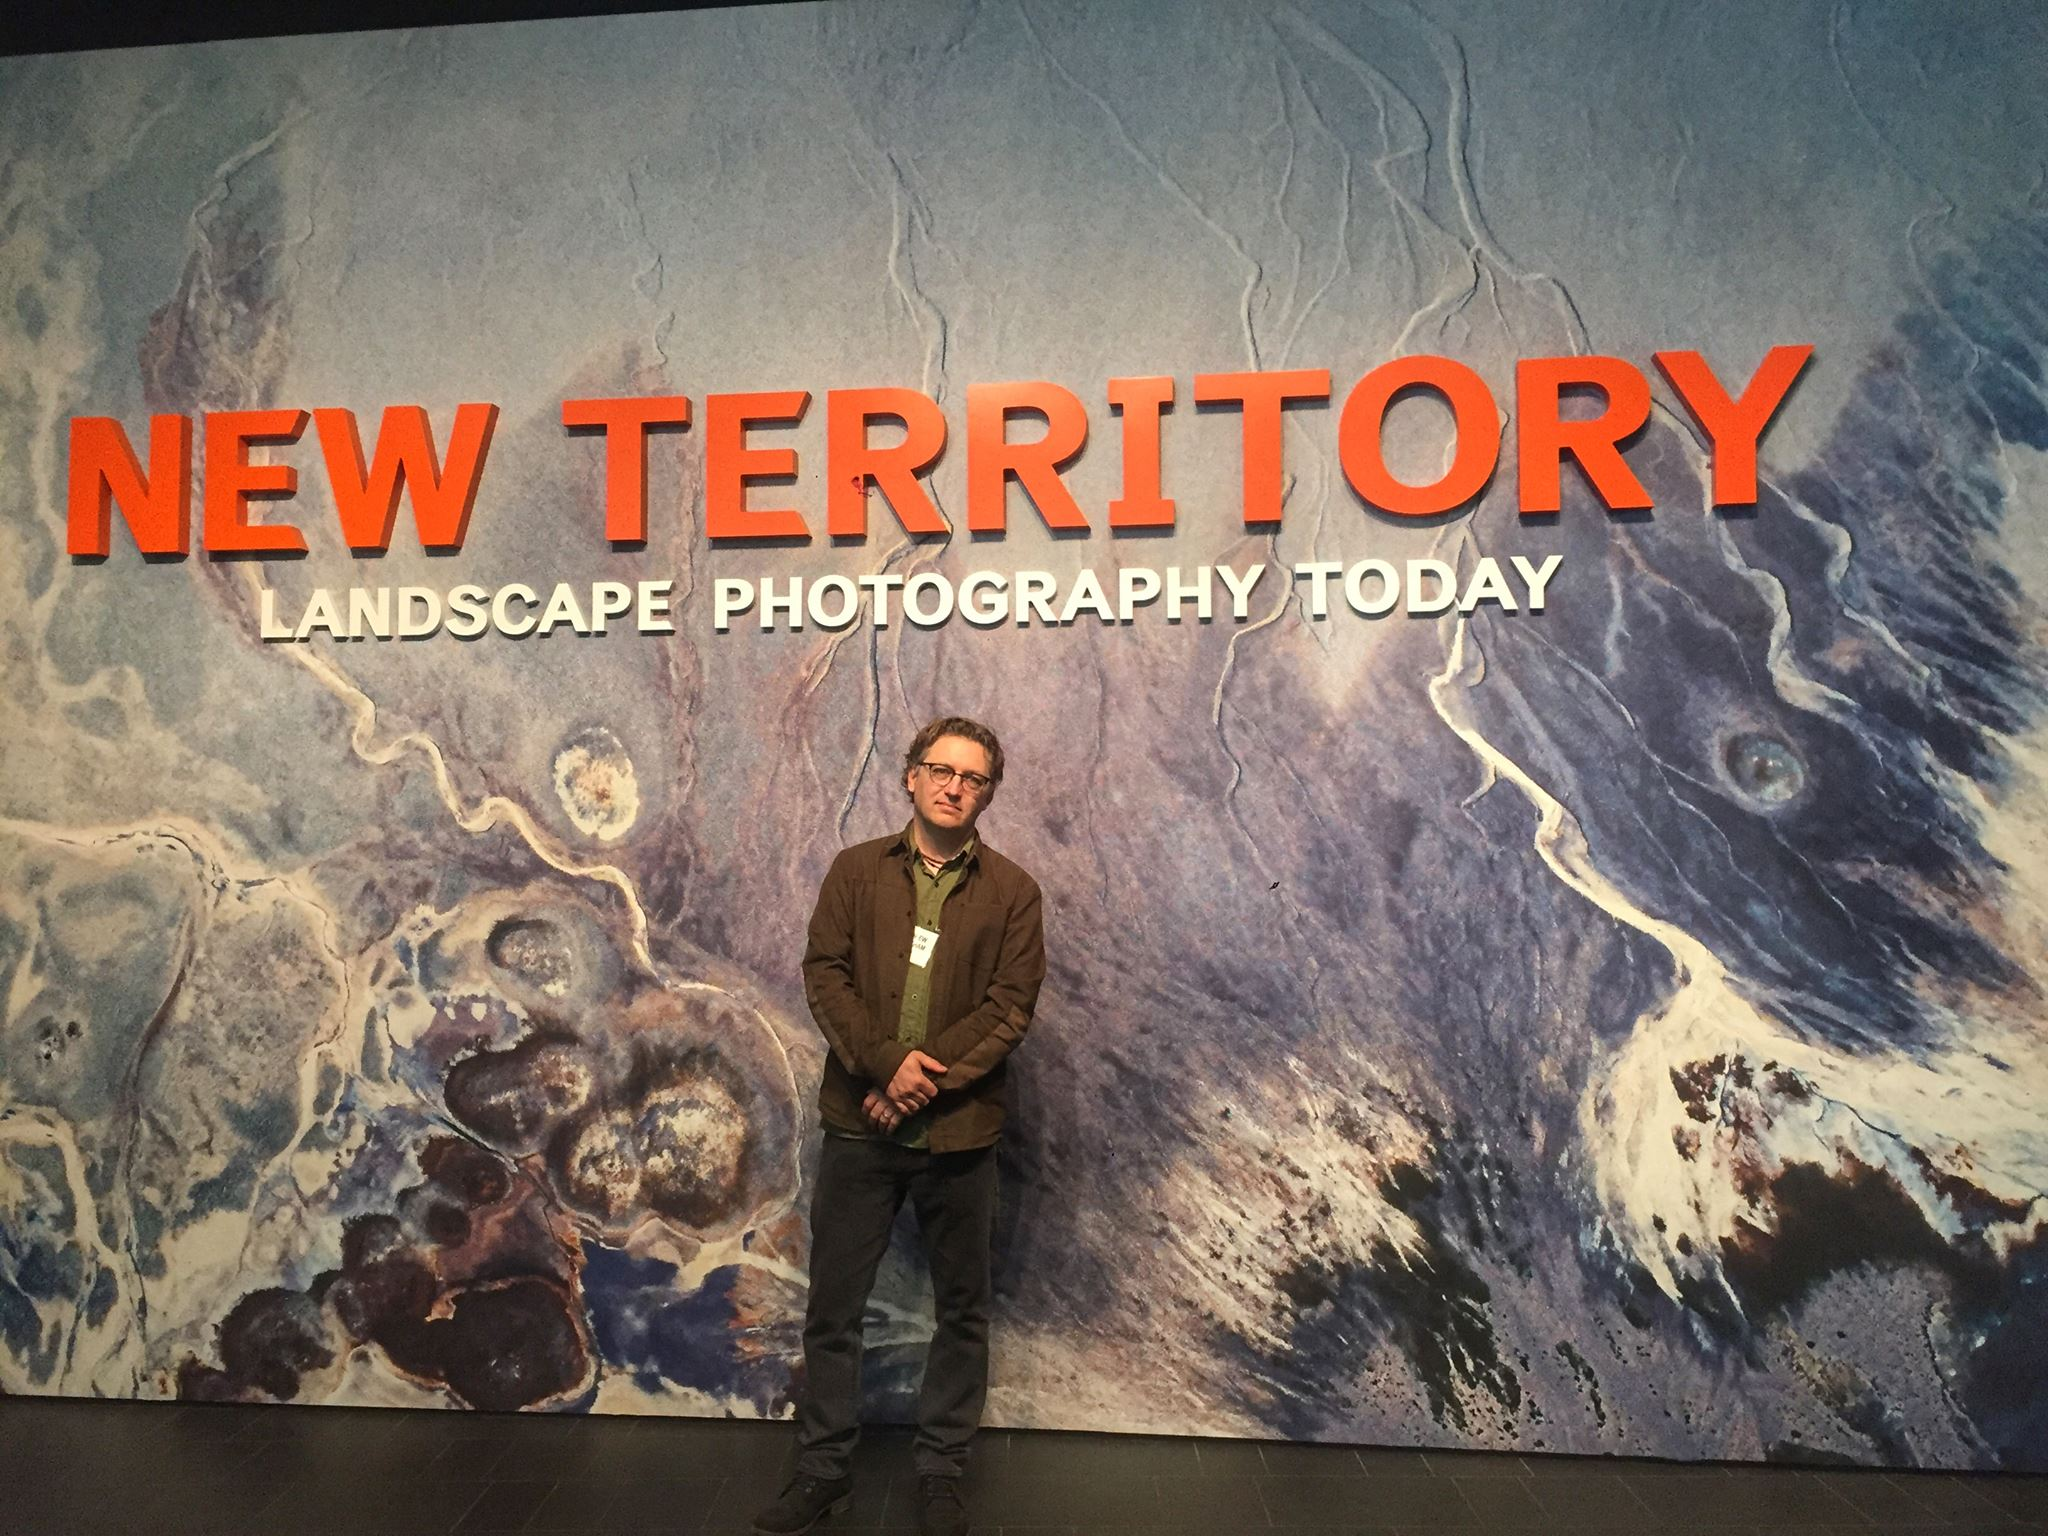 At the Press Preview for  New Territory: Landscape Photograohy Today,  which included 3 of my photographs in the exhibition, at the Denver Art Museum, 2018.